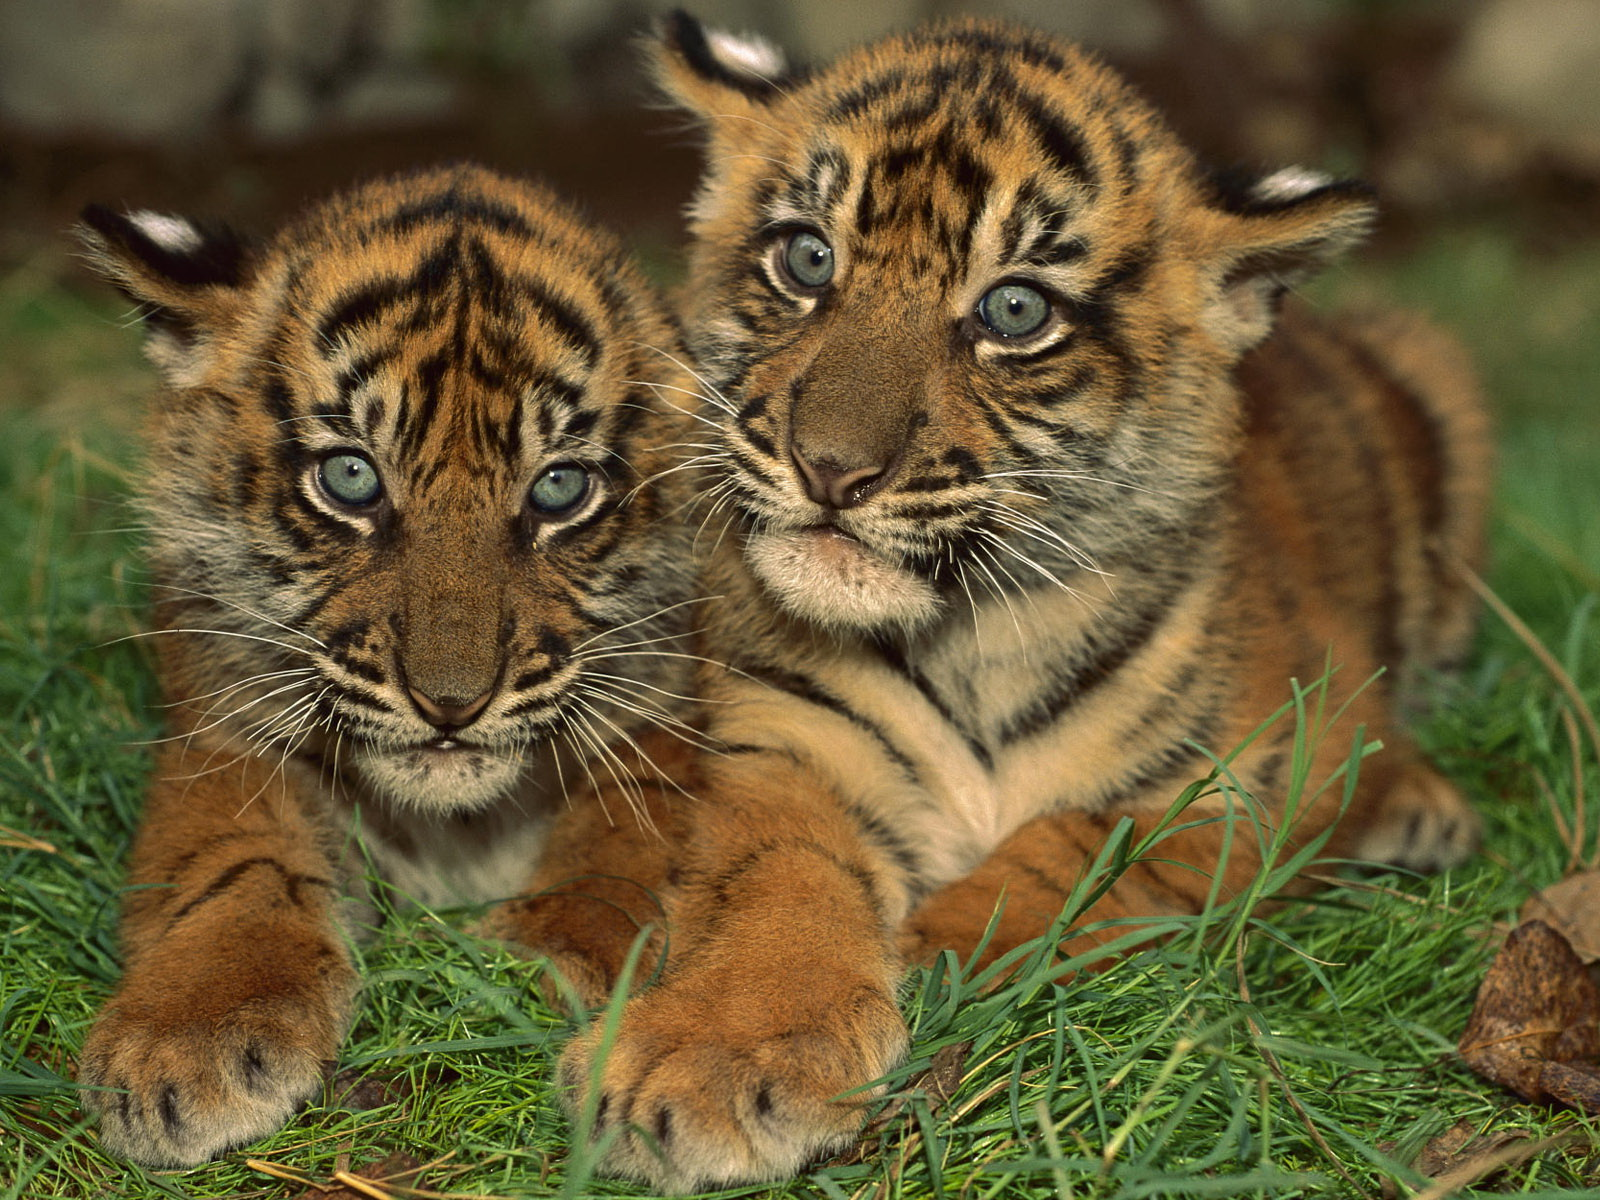 Funny wallpapers hd wallpapers cute tiger background - Cute baby animal desktop backgrounds ...